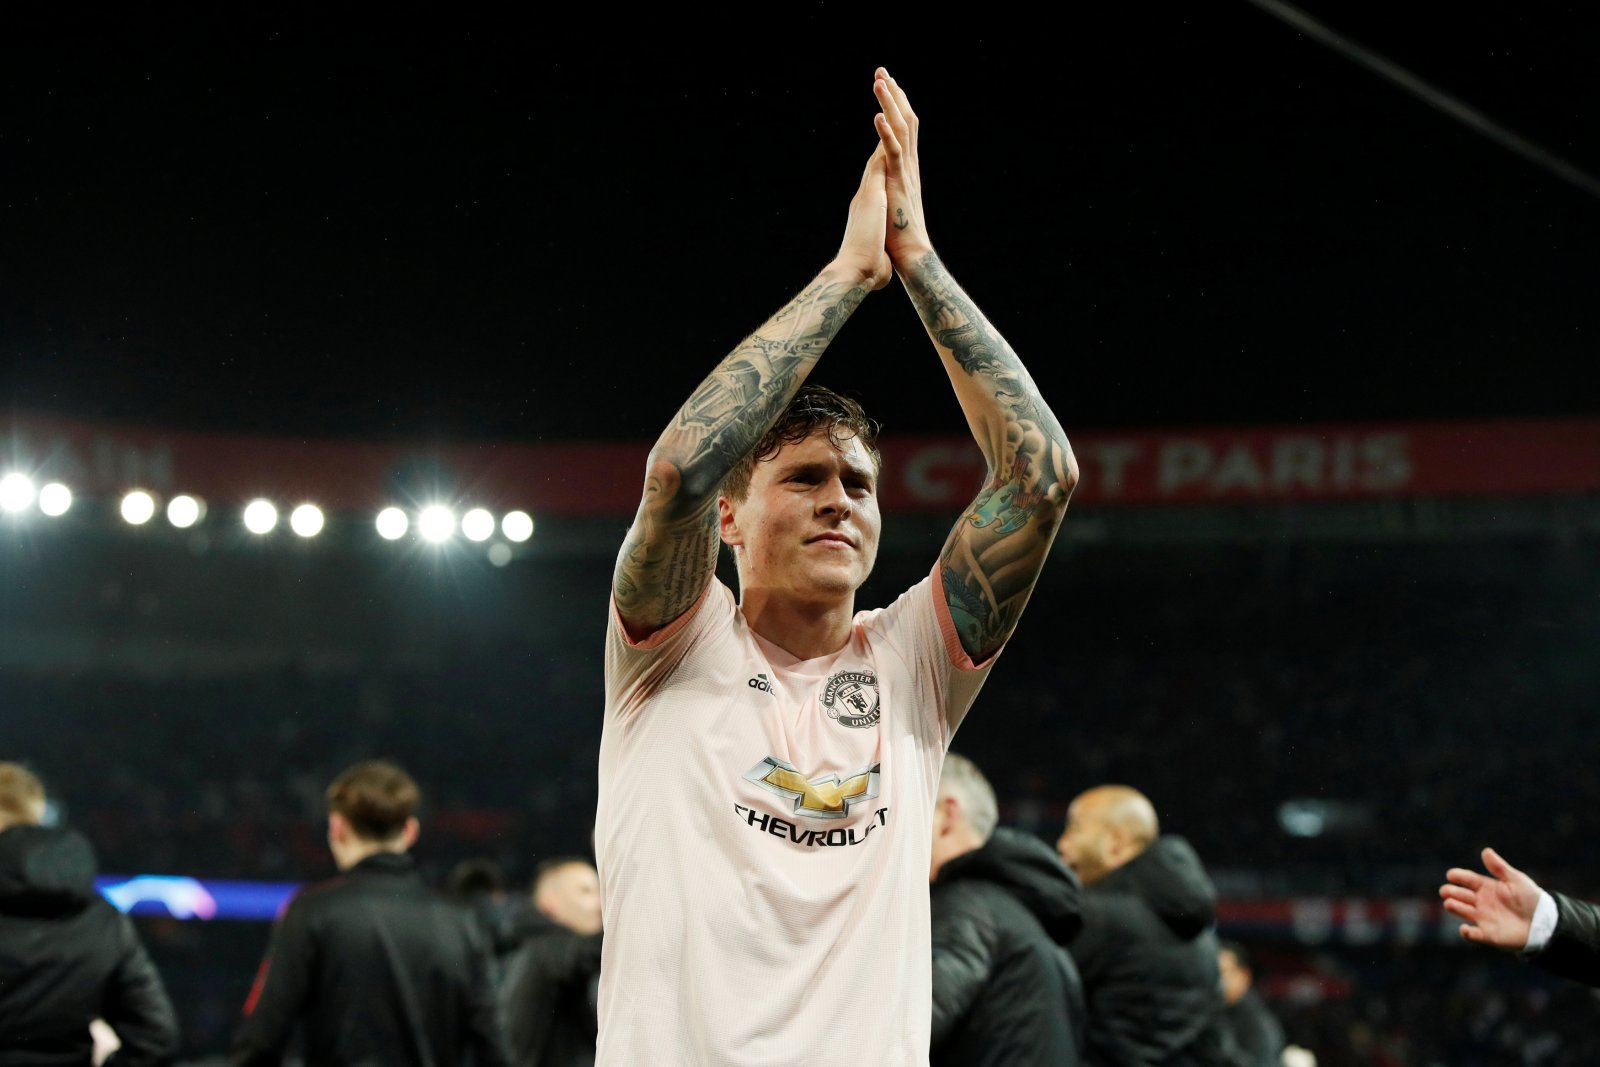 Manchester United: Fans give mixed response to Lindelof's international goal